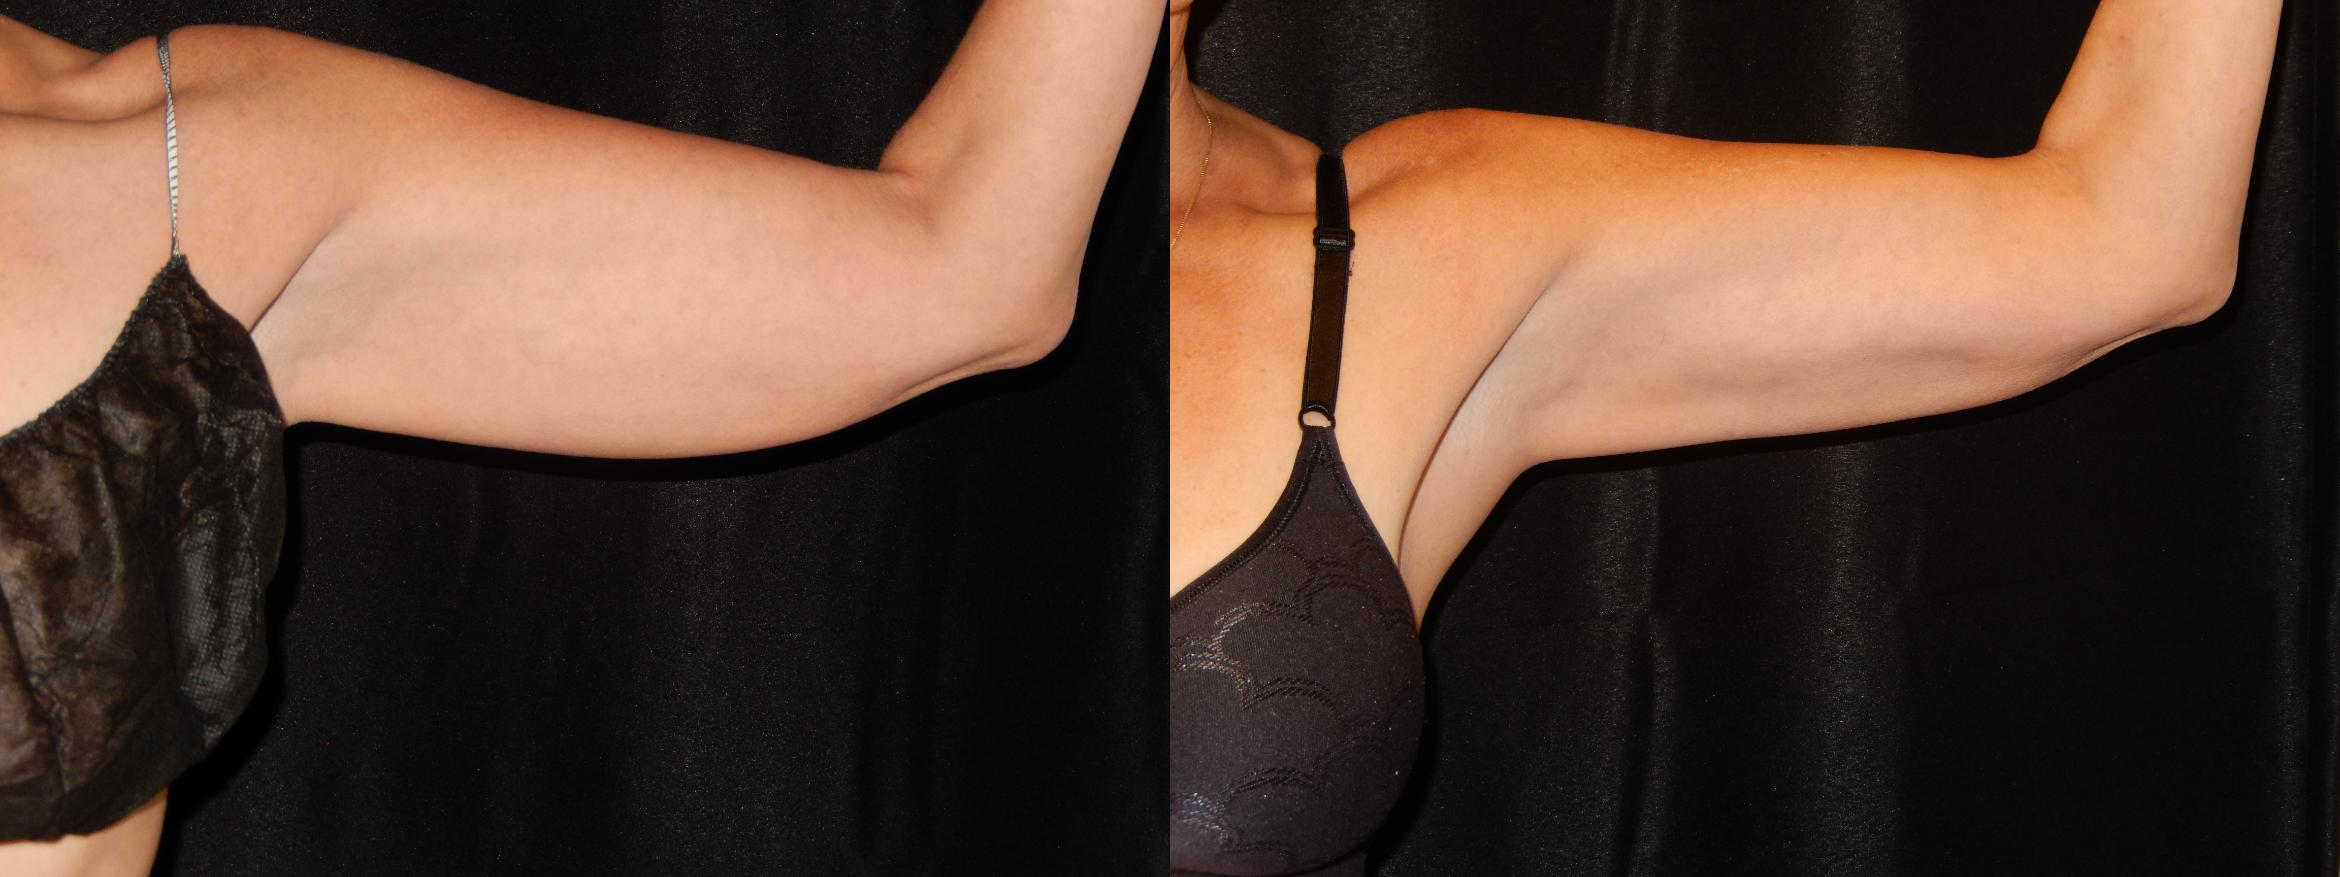 CoolSculpting Before & After Photo | Longmeadow, MA | Aesthetic Plastic & Reconstructive Surgery